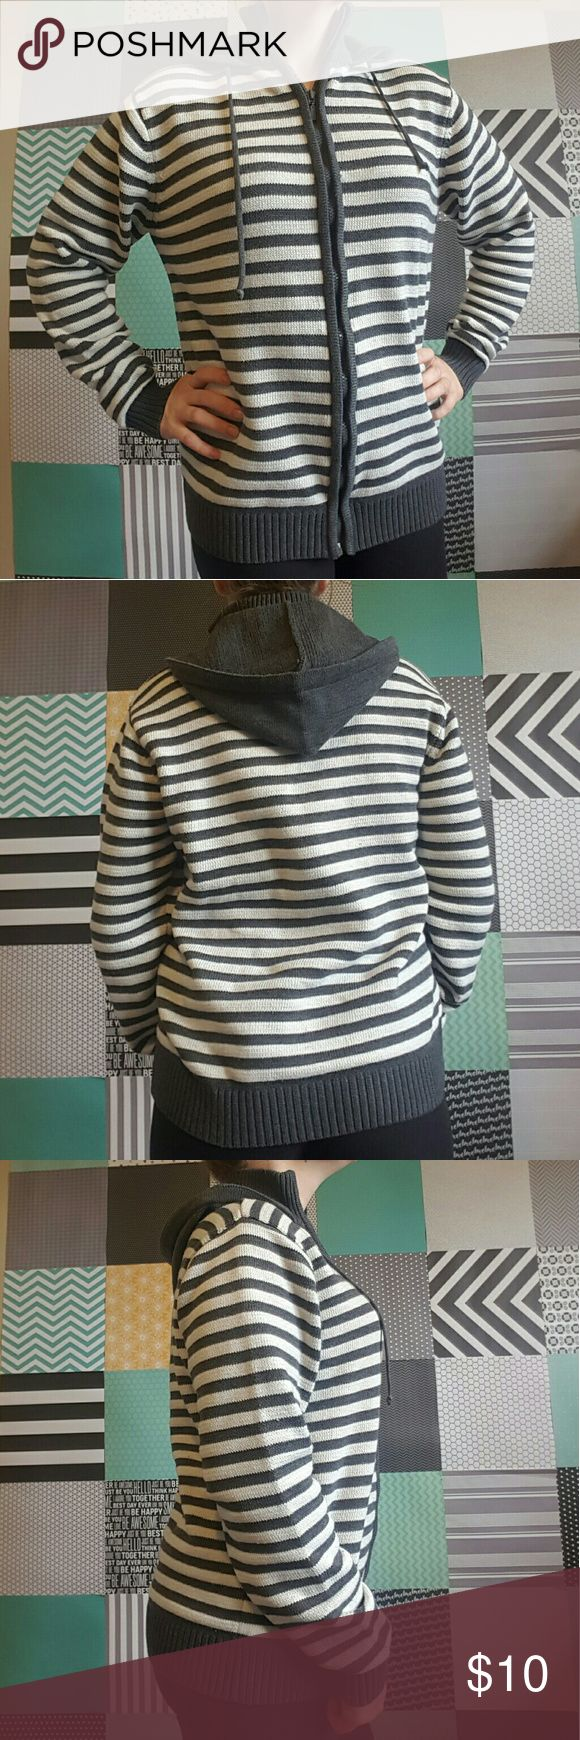 Attitude Gold Striped Zip Up Hoodie Sweater Attitude Gold, gray and off-white stripes, zipper closure, hood, good condition, size XL but runs small, I typically a size medium. Attitude Gold Sweaters